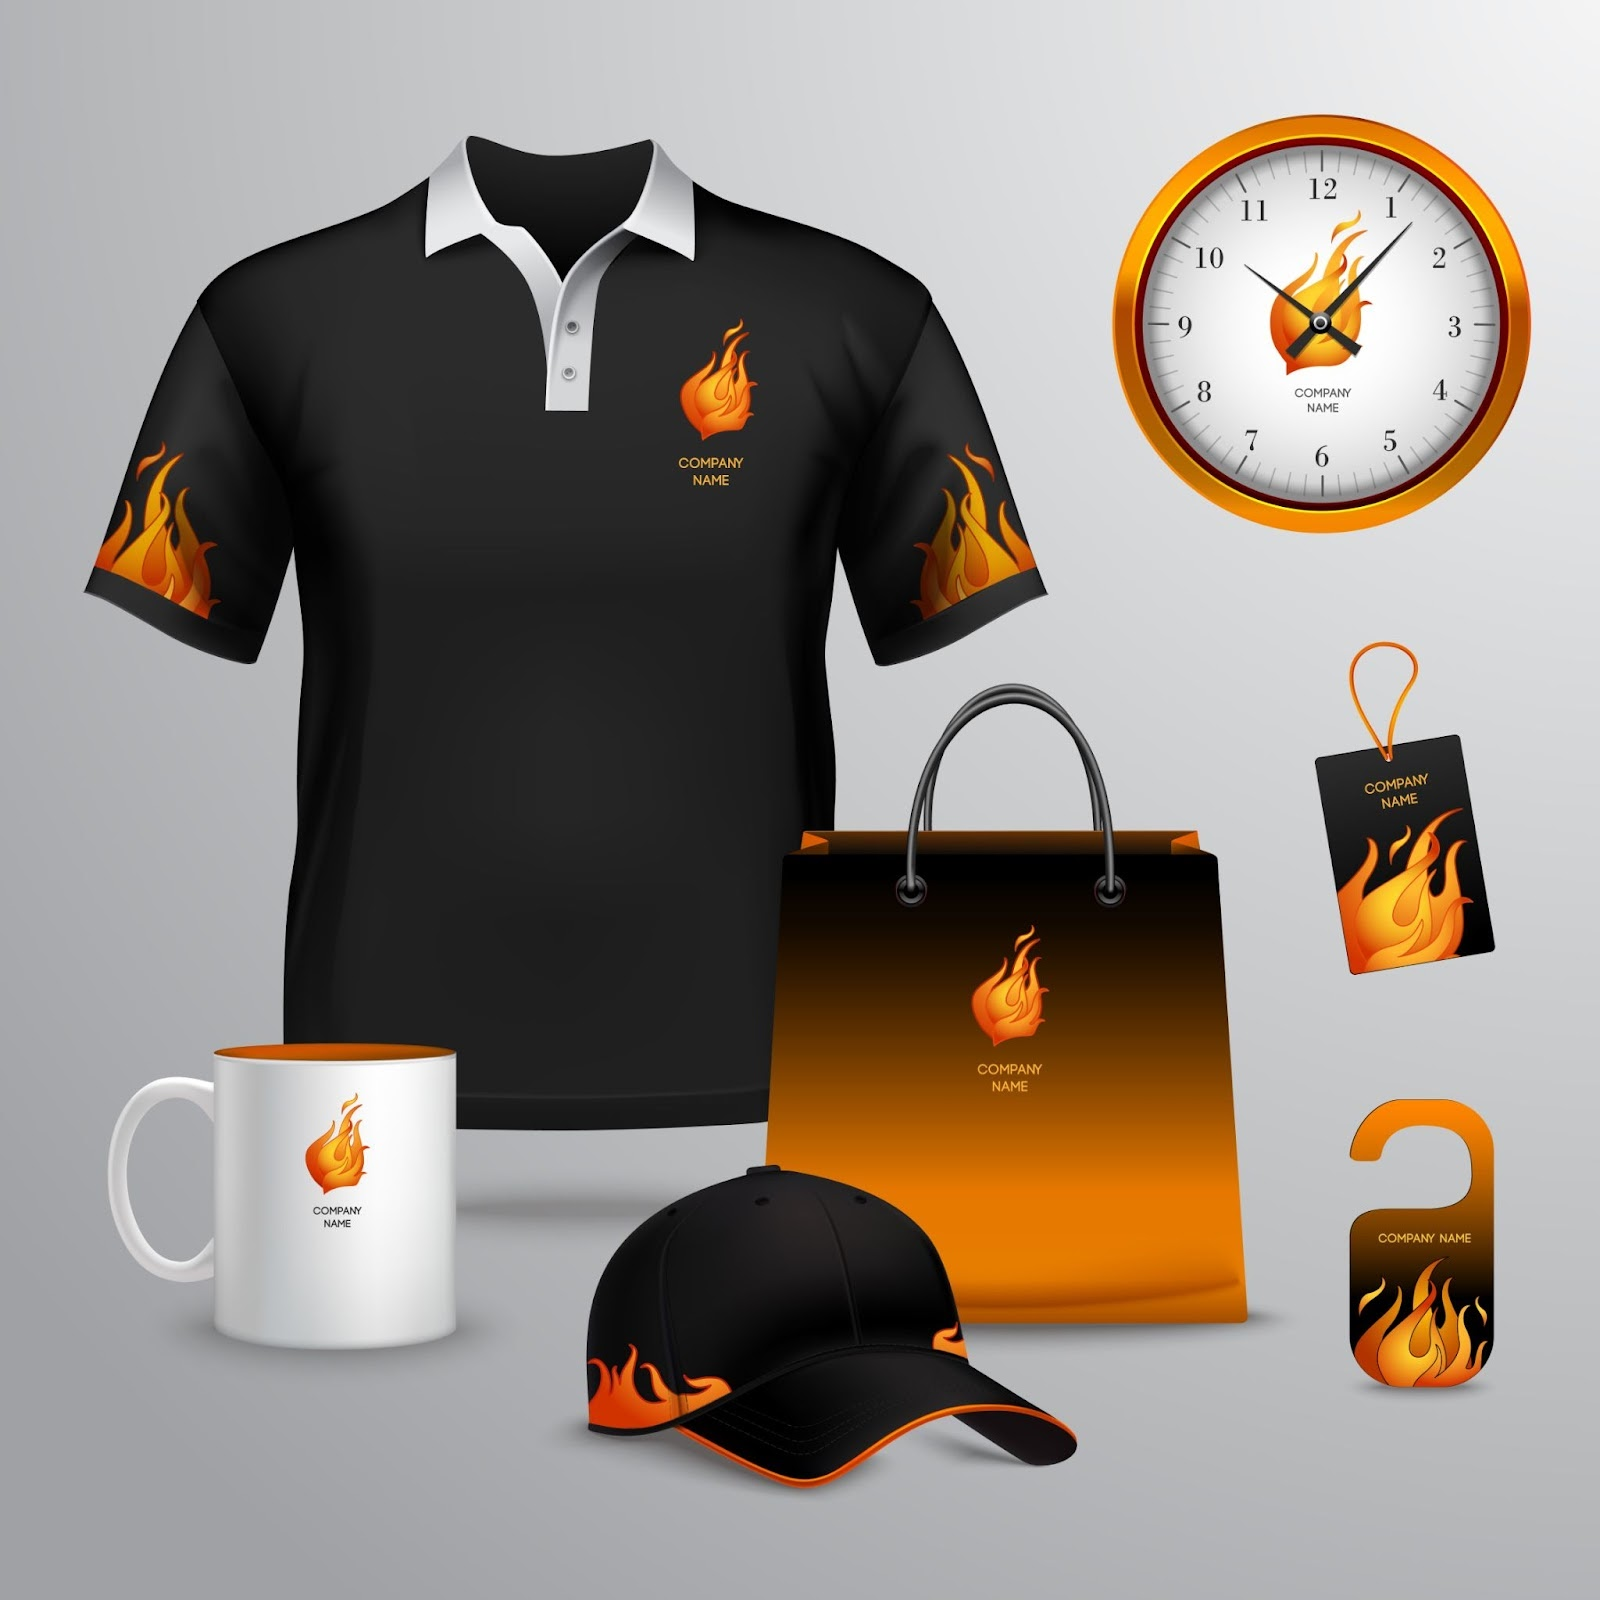 Example of Customized products